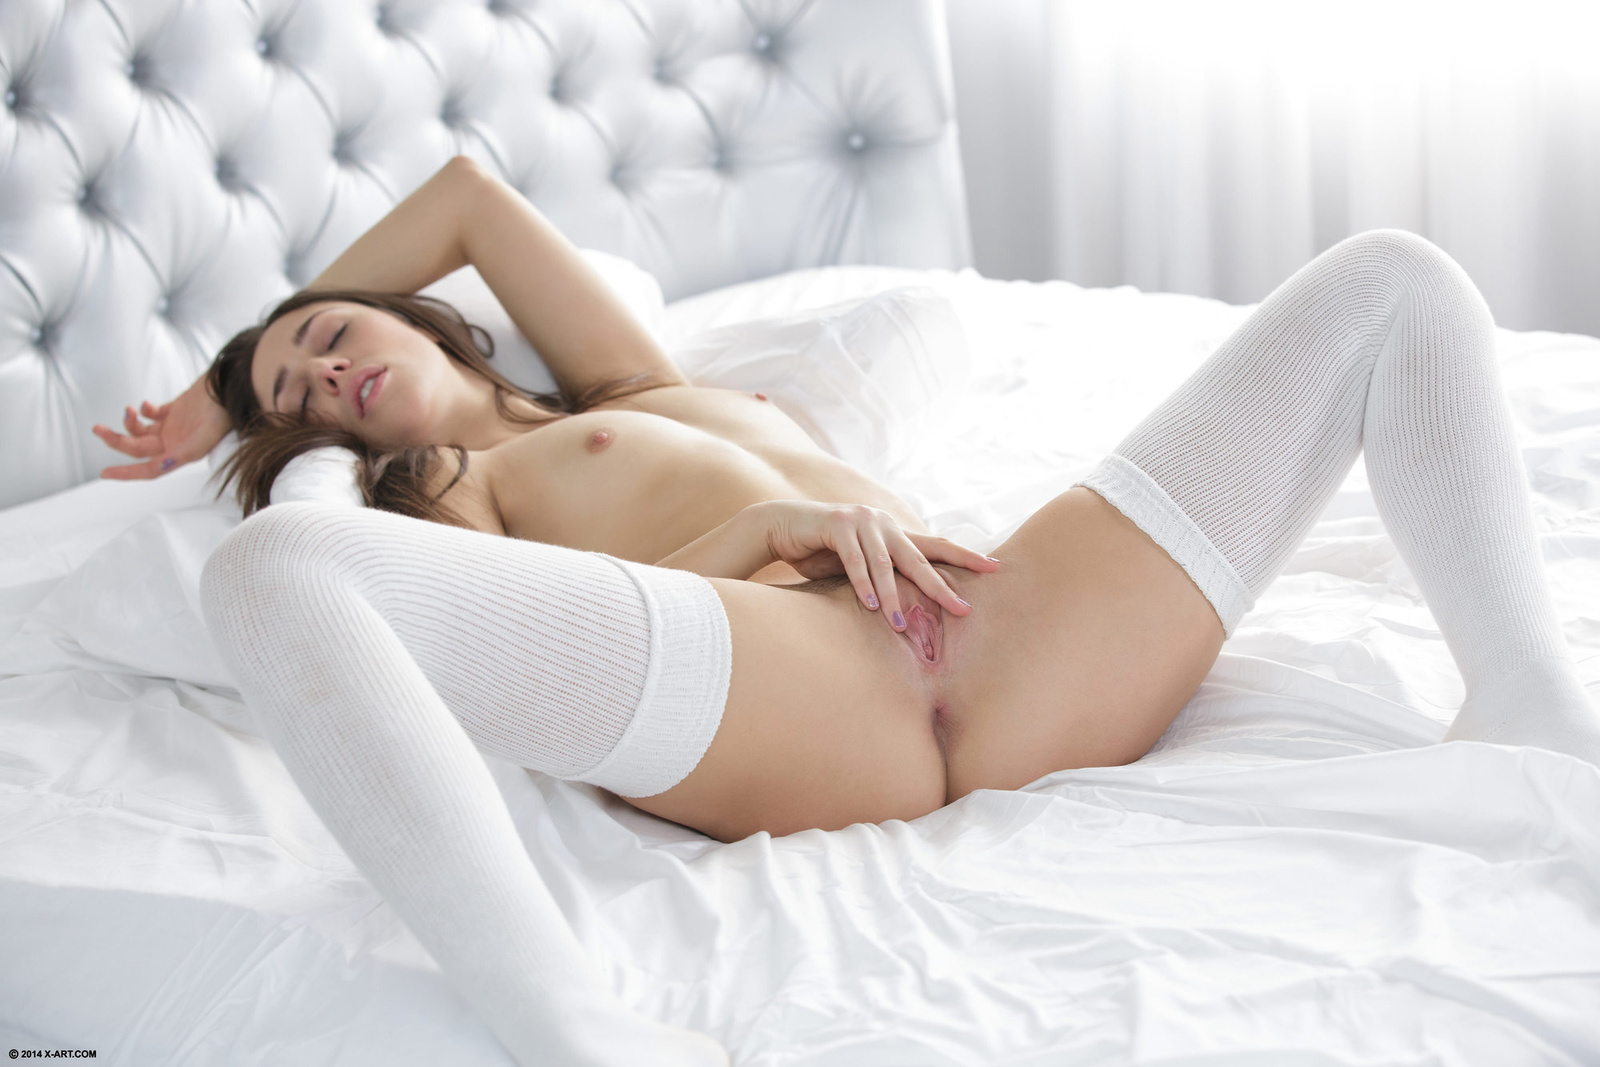 anna-m-woolen-stocking-nude-xart-13